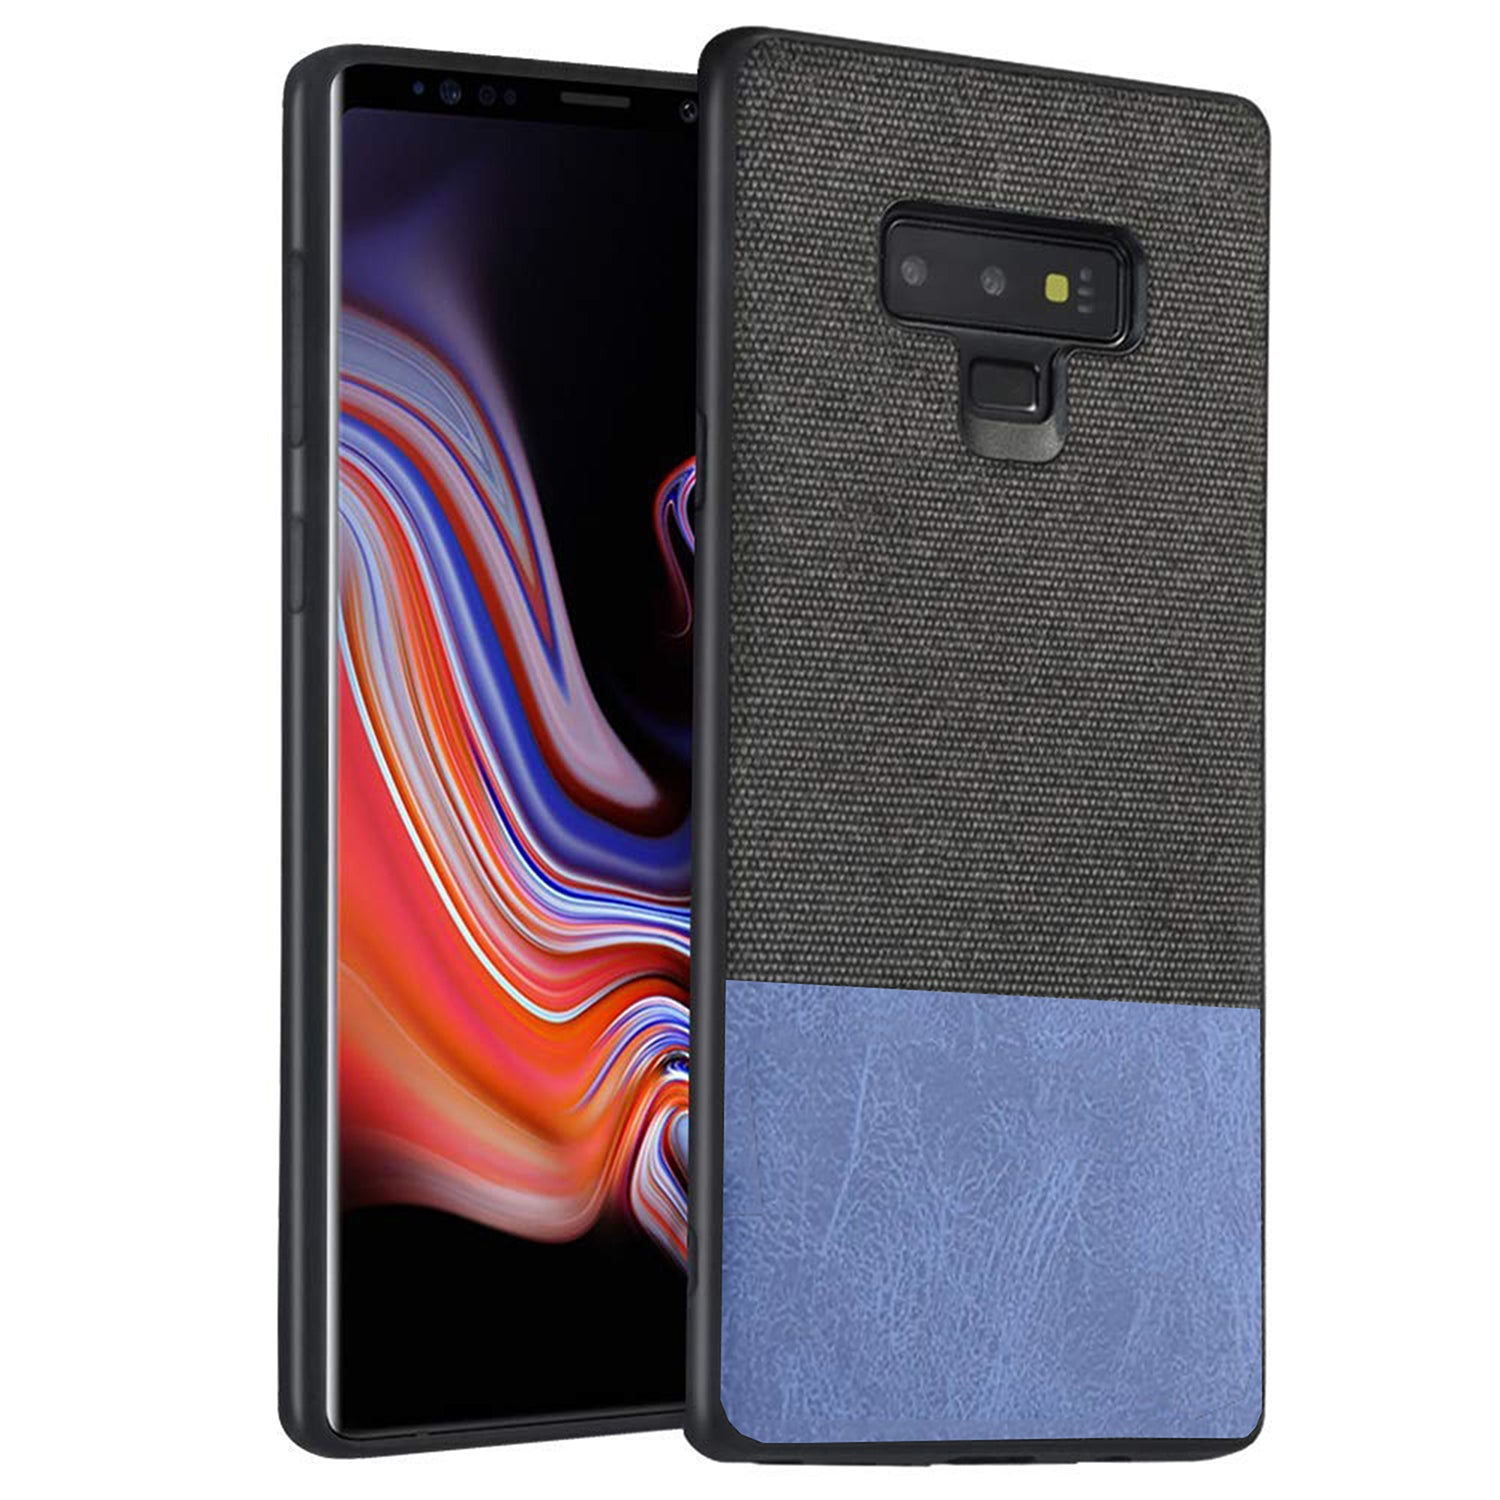 Fabric + Leather Hybrid Protective Case Cover for Samsung Galaxy Note 9 -  Black , Blue - Mobizang